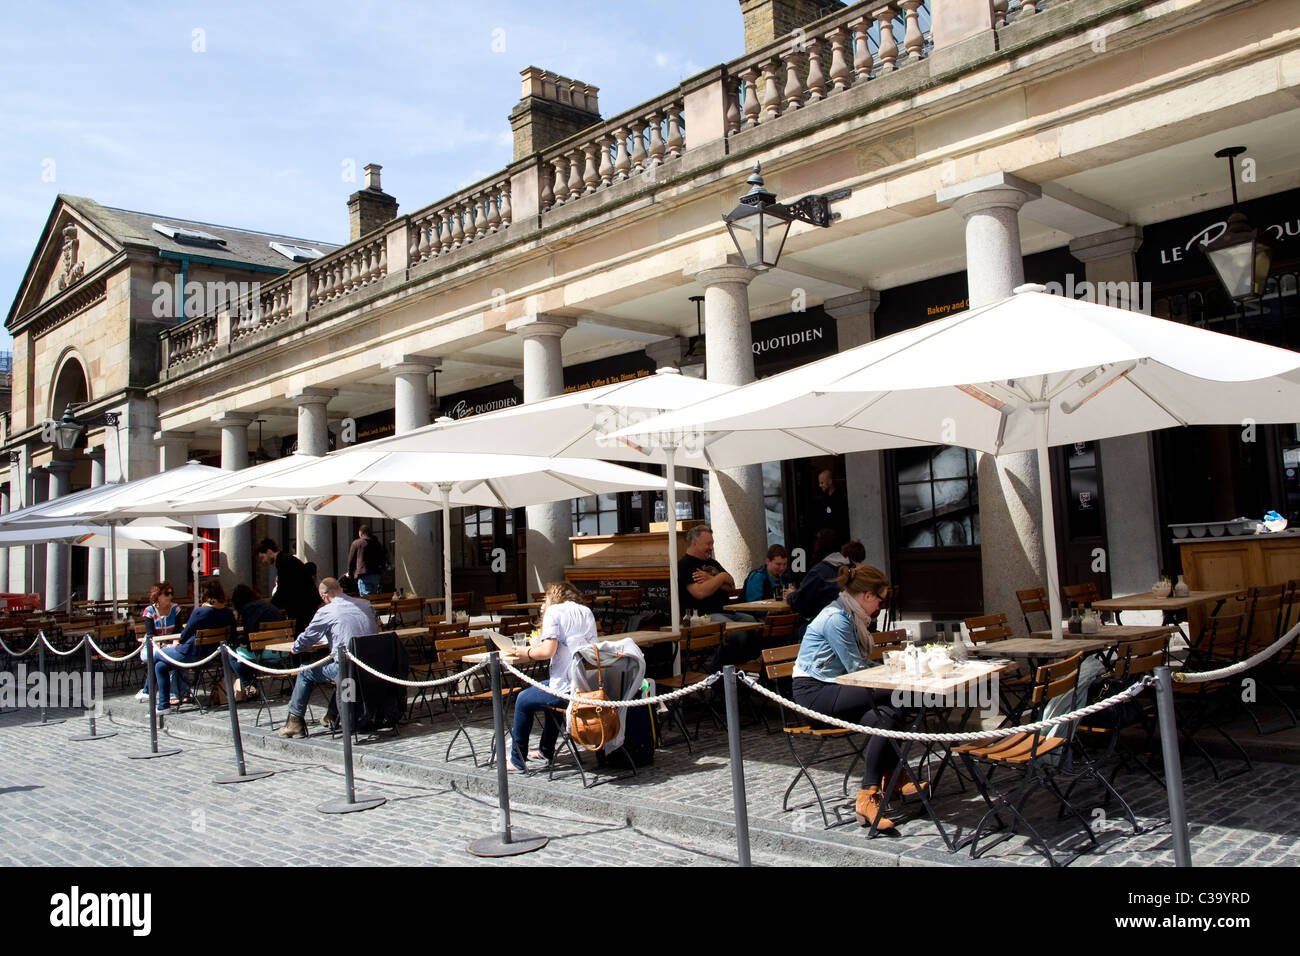 Covent Garden market, West End tourist site associated with Royal Opera House, and former area of fruit and vegetable - Stock Image